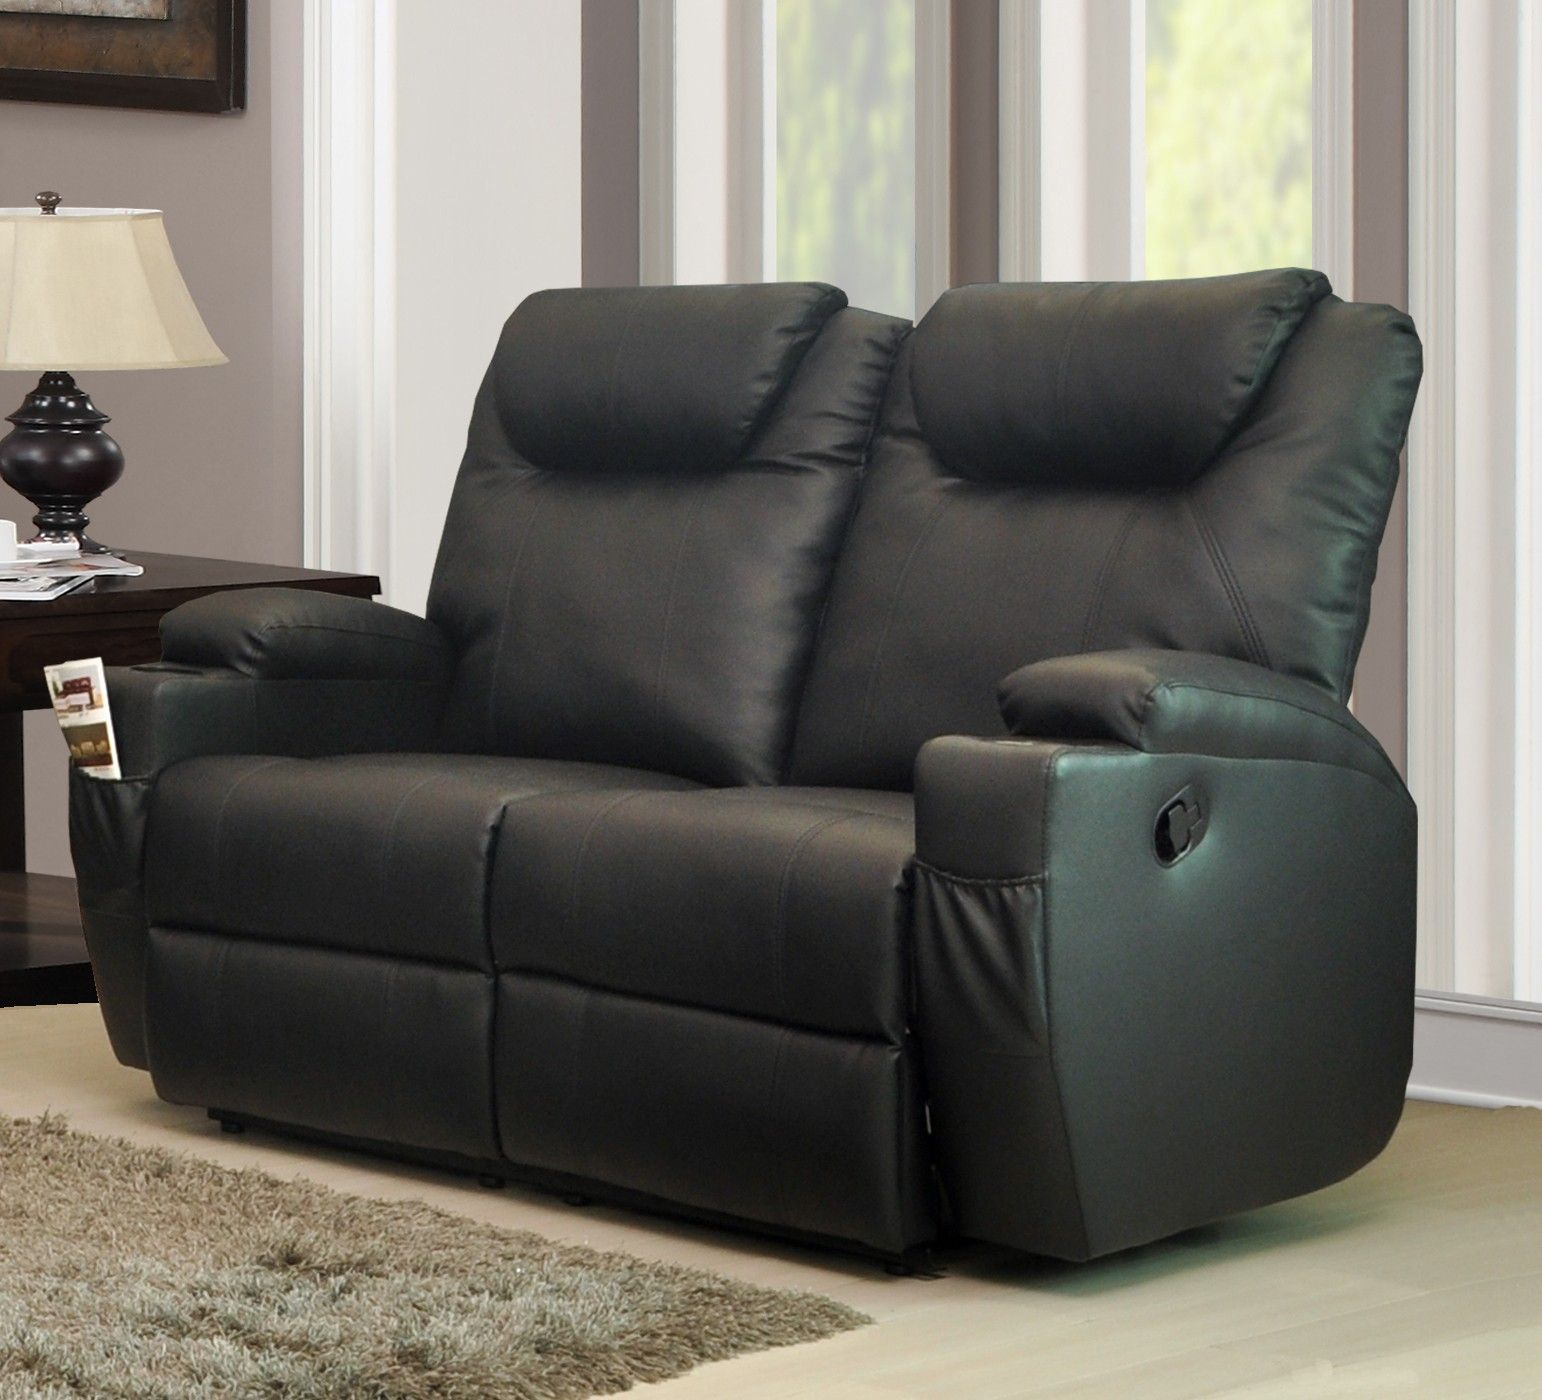 Furniture Living Room Black Full Grain Leather Reclining Sofa For